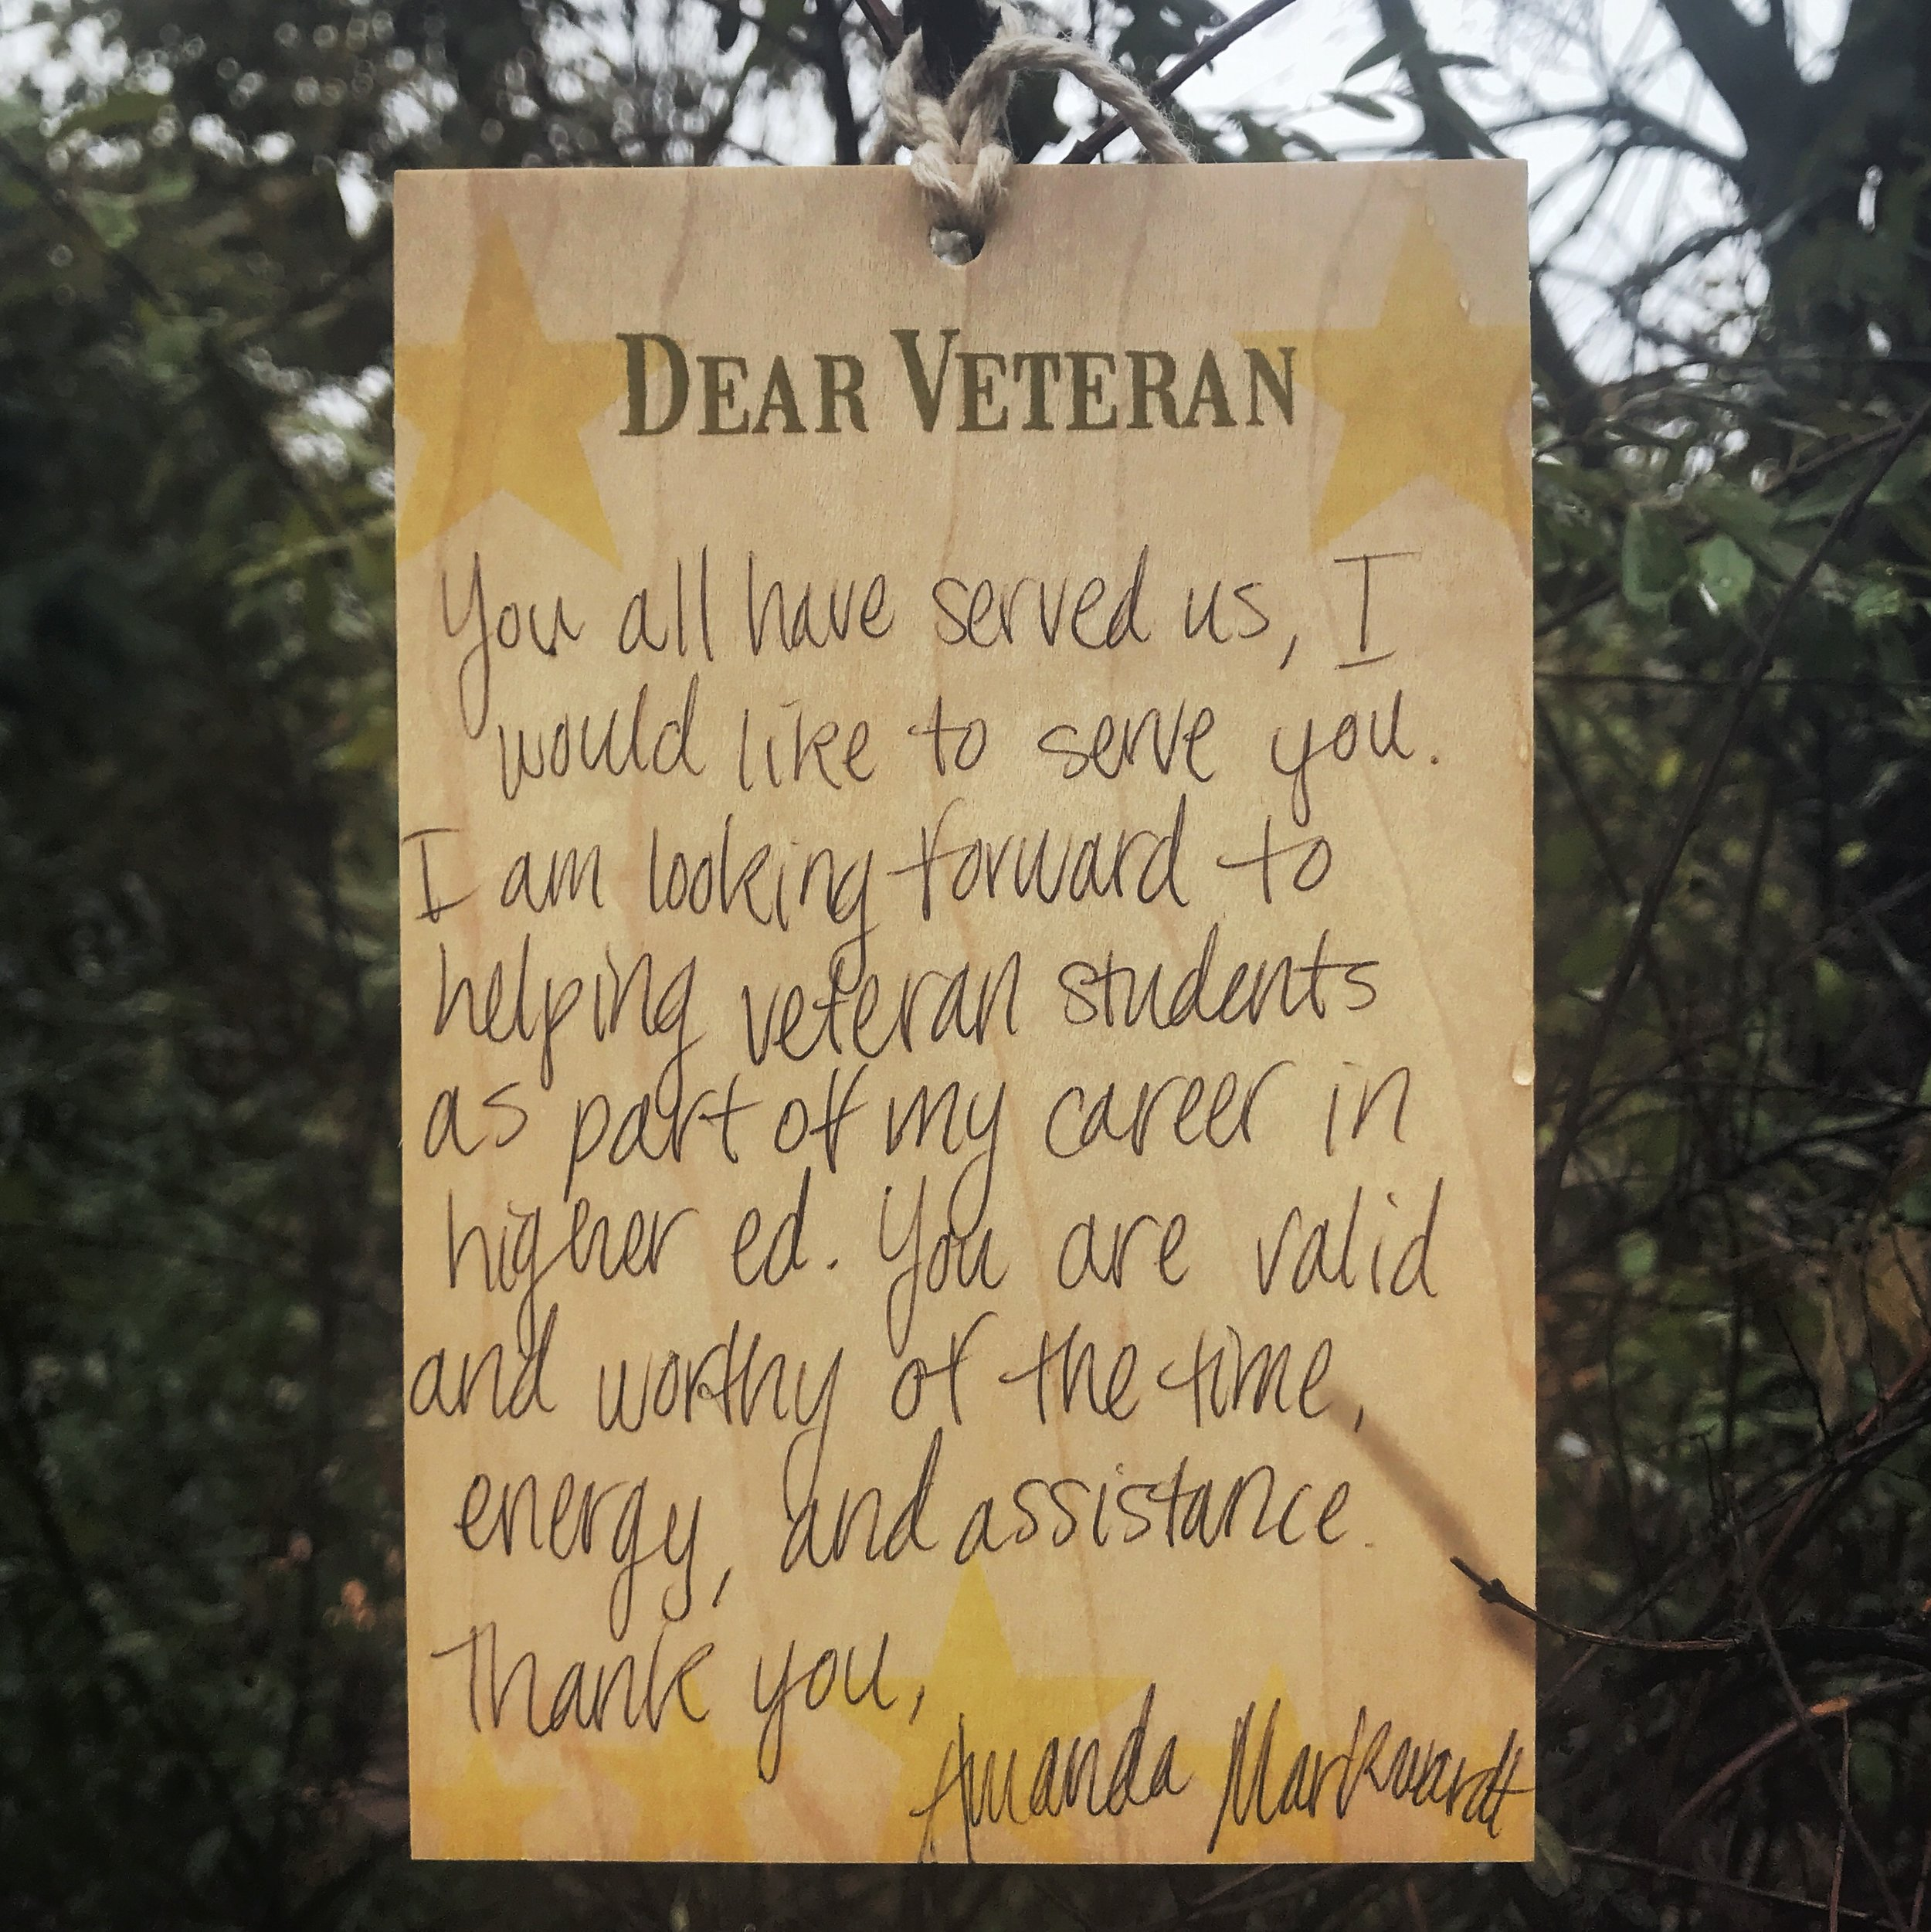 DearVeteran_NOV18_2017.JPG